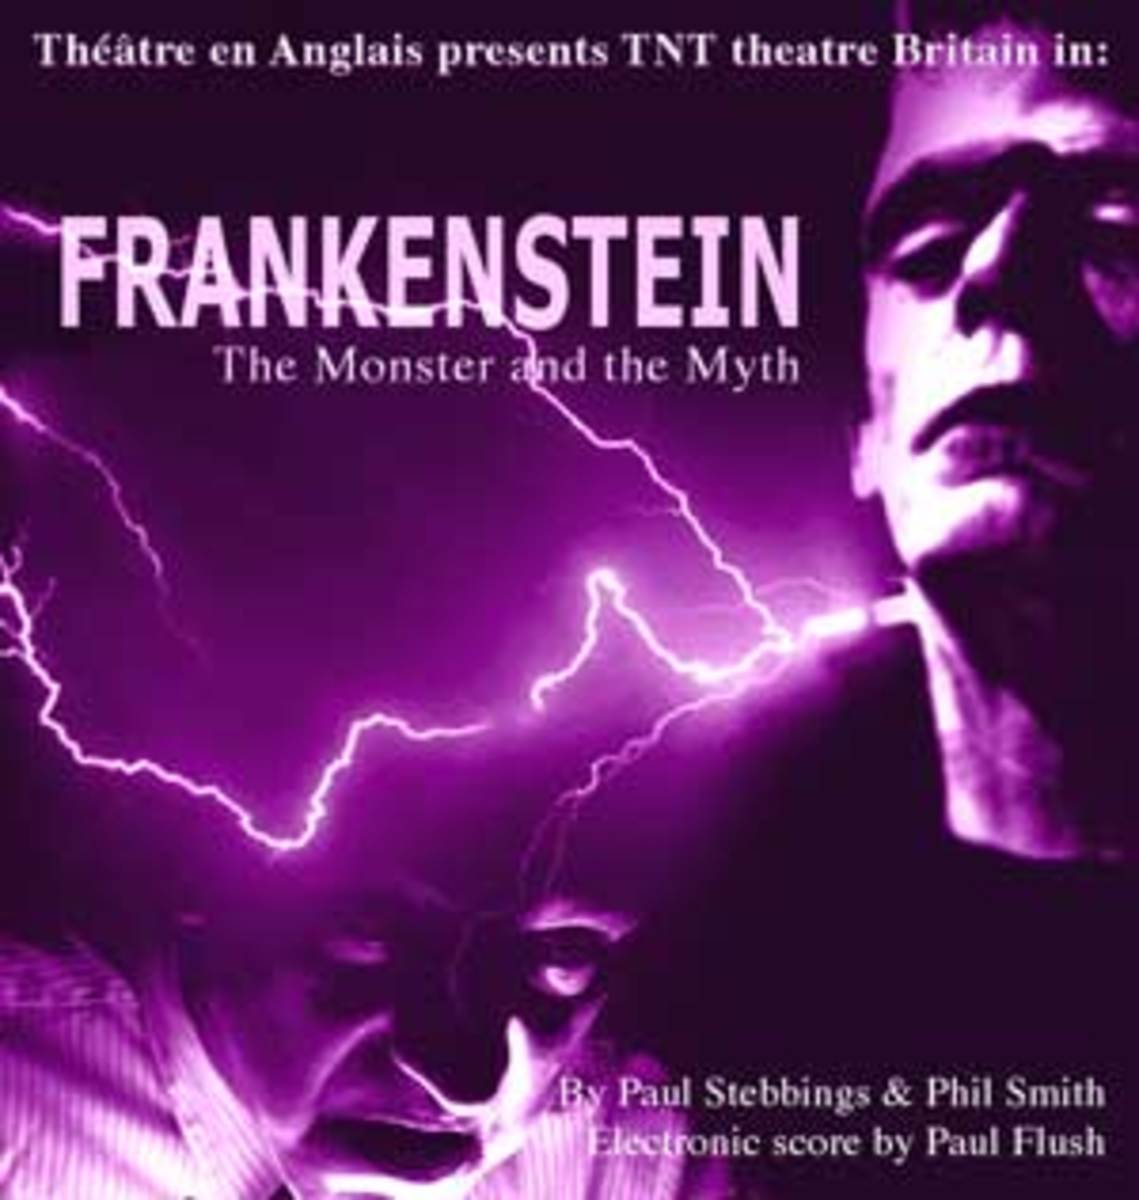 frankenstein scientific discovery and the role At least inasmuch as modern science is experimental science, victor frankenstein fits the description of a modern scientist 12 a second point is the intriguing fact that the tiny minority of critics who propose qualifications to the moral condemnation of victor frankenstein also happen to privilege his role as scientist.